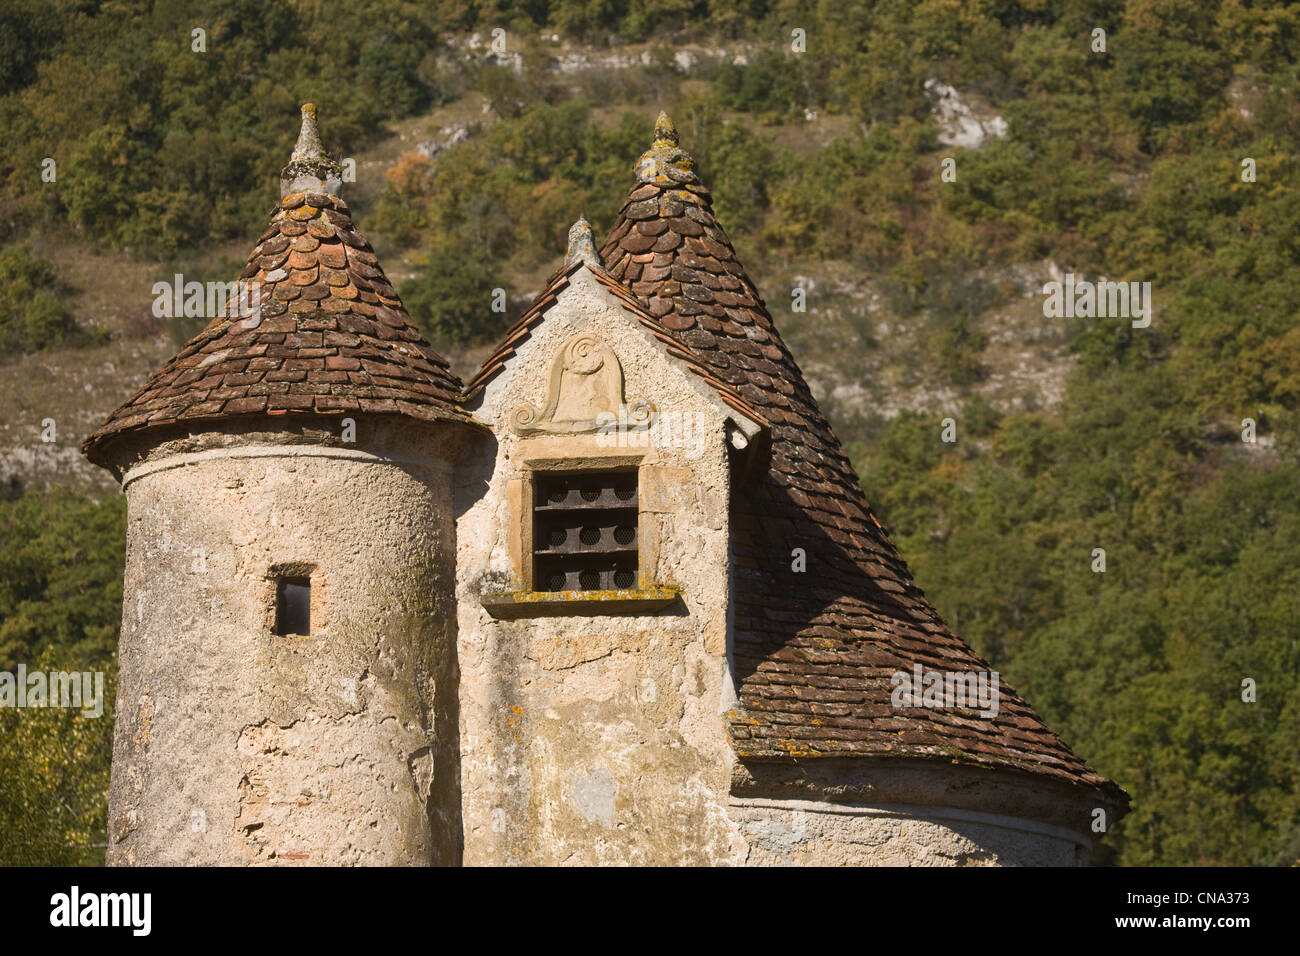 France, Lot, Autoire, Castle Limargue, the fifteenth century, labeled The Most Beautiful Villages of France - Stock Image